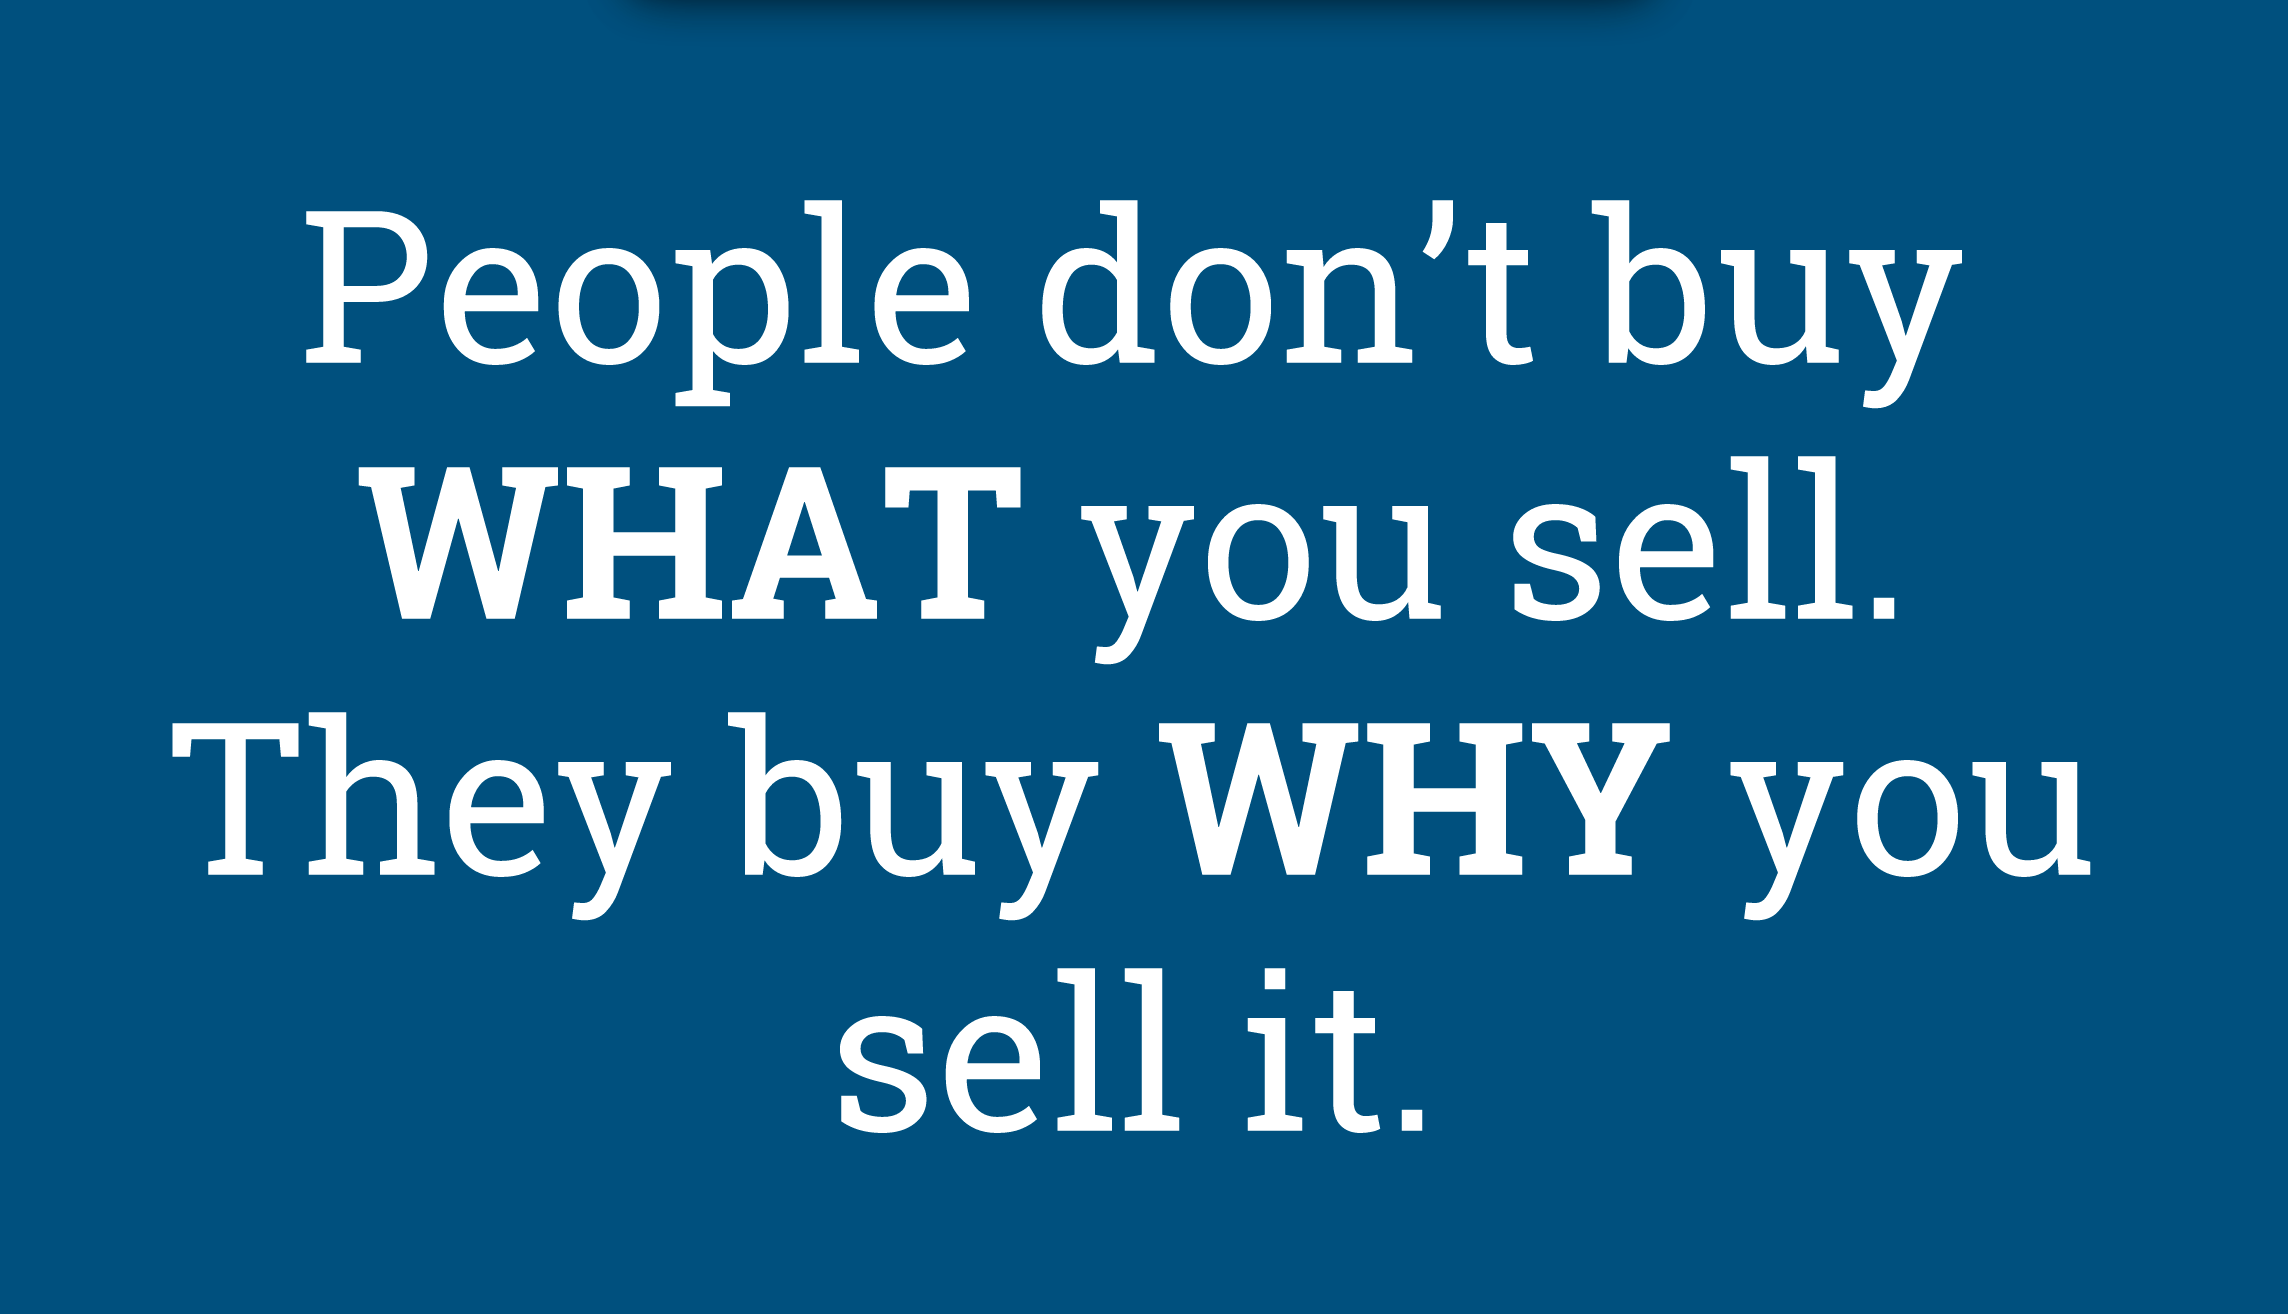 People don't buy what you sell, but why you sell it